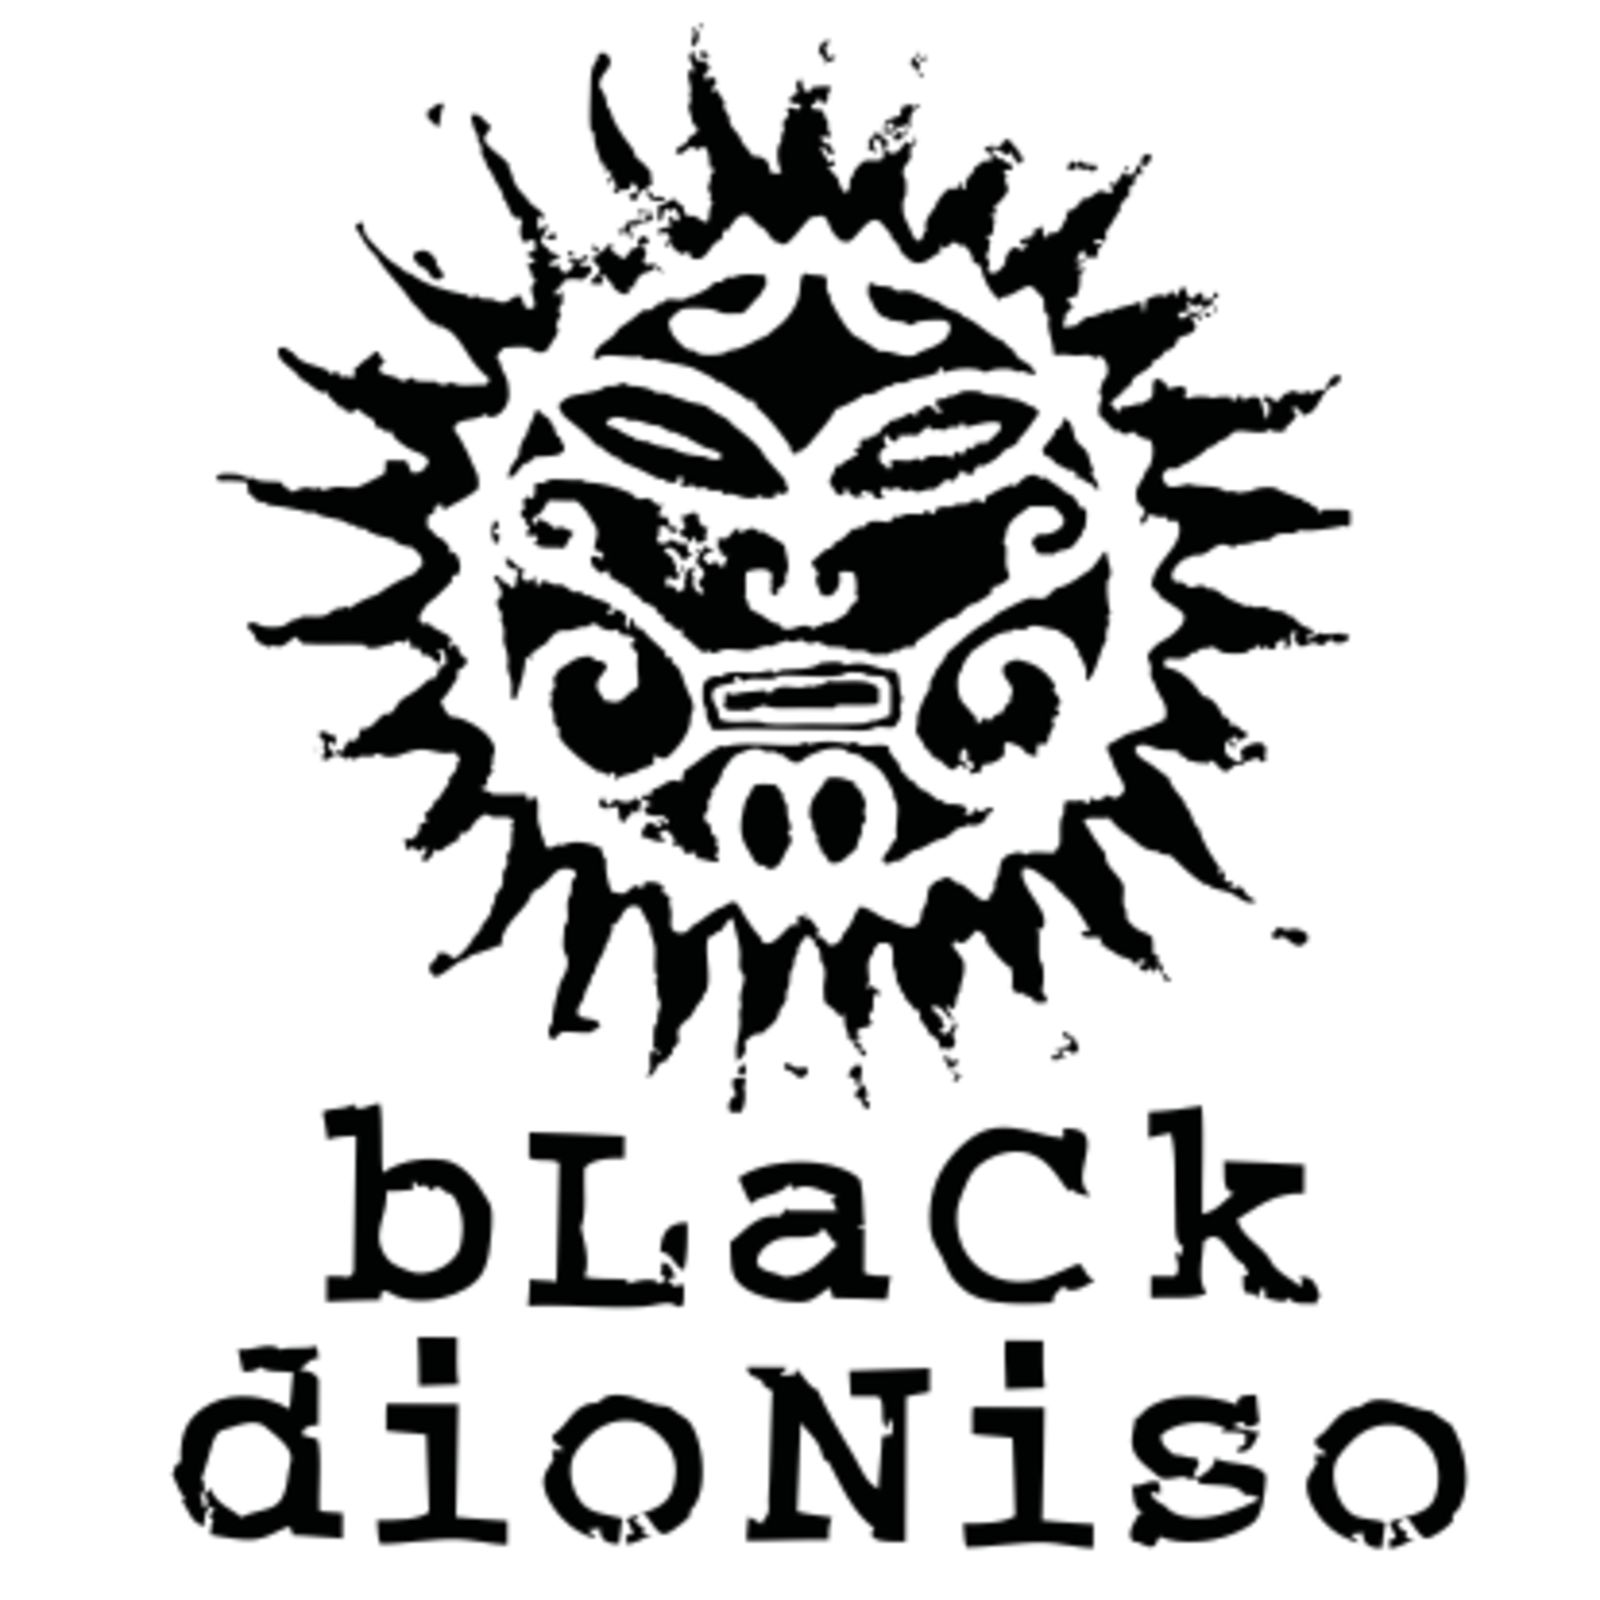 bLaCk dioNisO